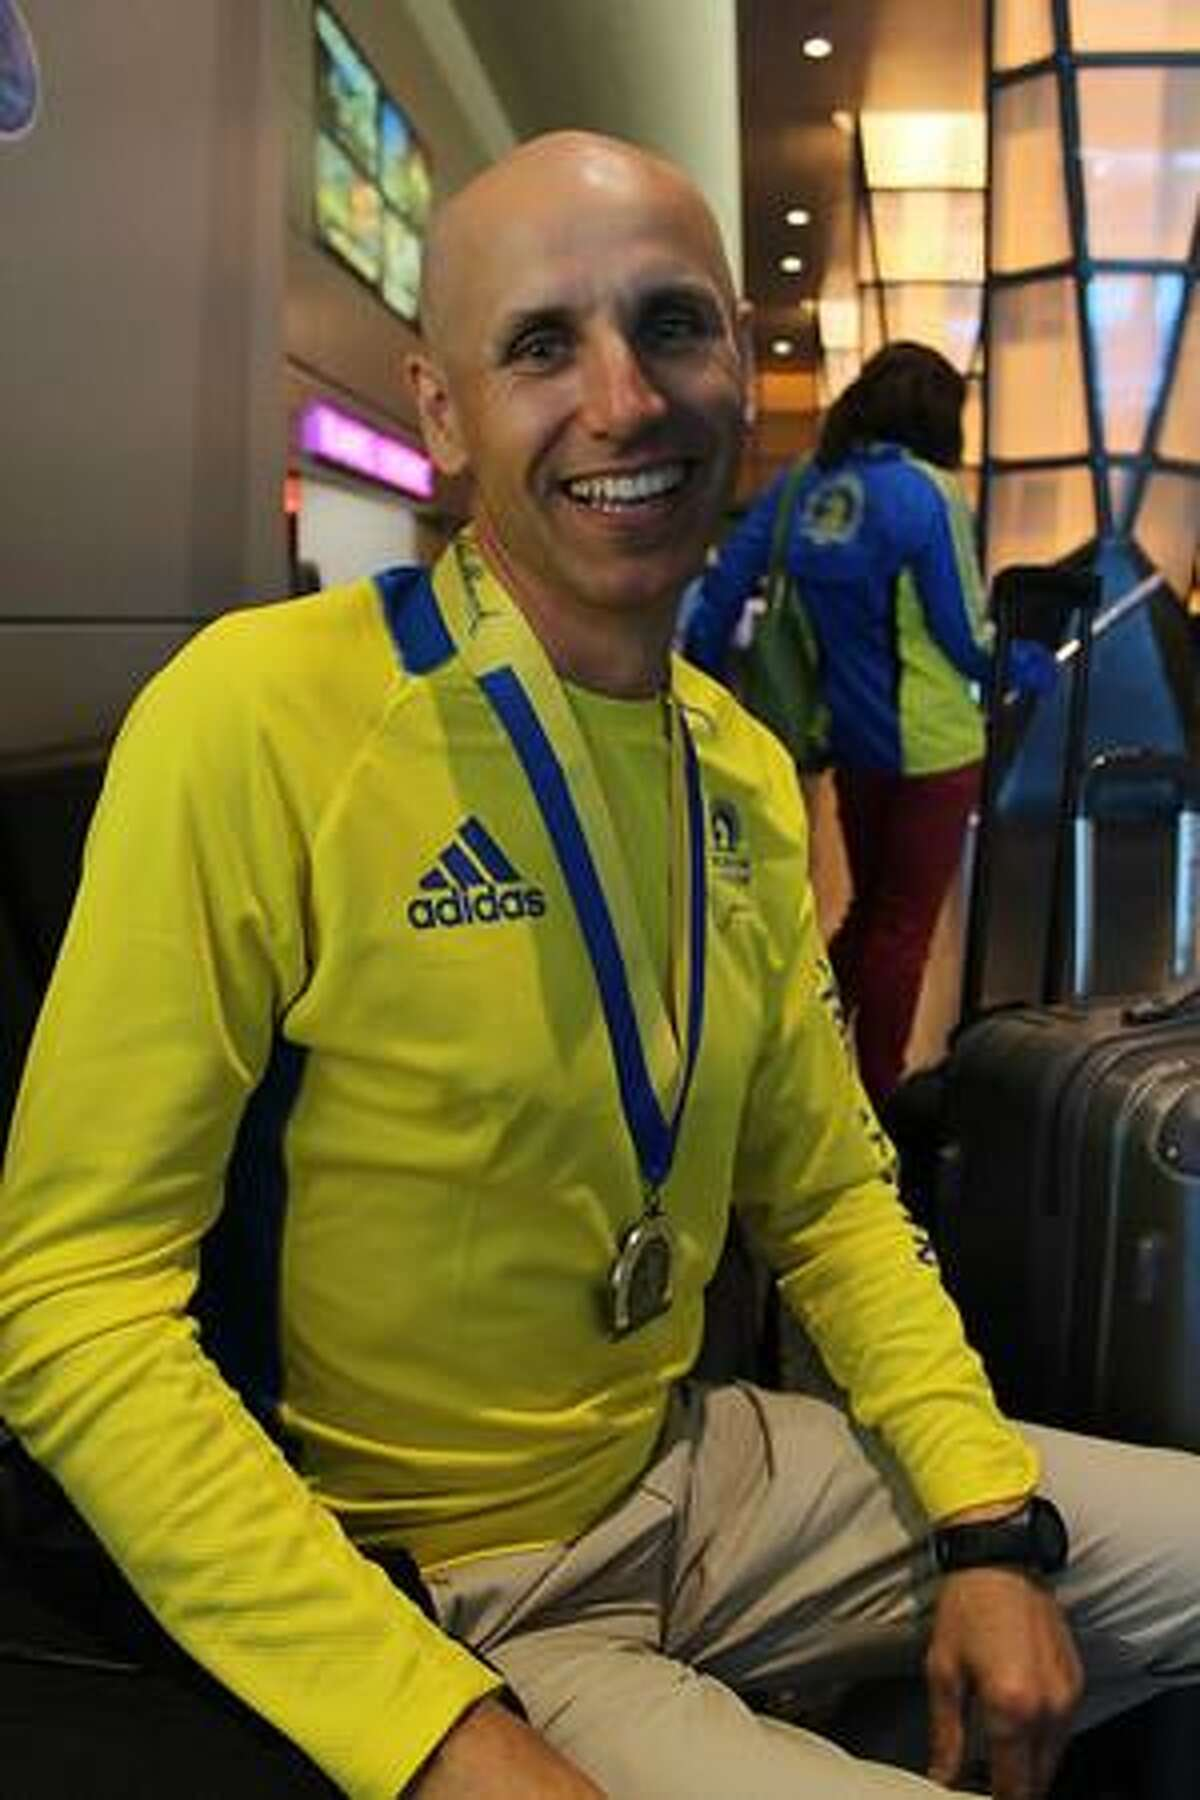 Meet Arunas Kumpis, a marathoner from Vilnius, Lithuania. Kumpis said he was saddened by yesterday's tragedy but smiled when he was asked about his time in Boston.